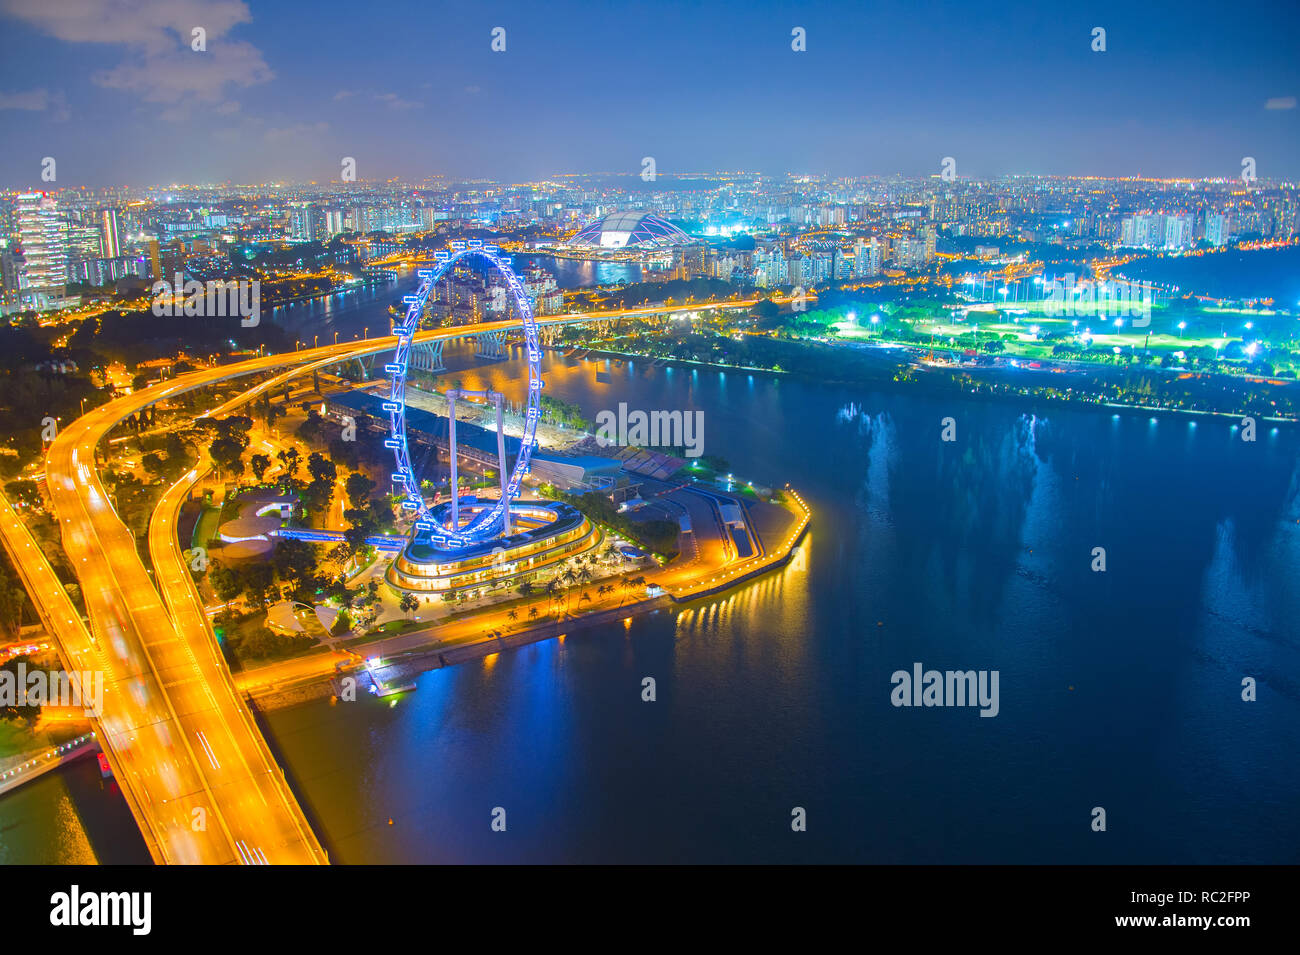 Aerial view of illuminated Singapore metropolis at night, embankment with ferris wheel ad city highway - Stock Image